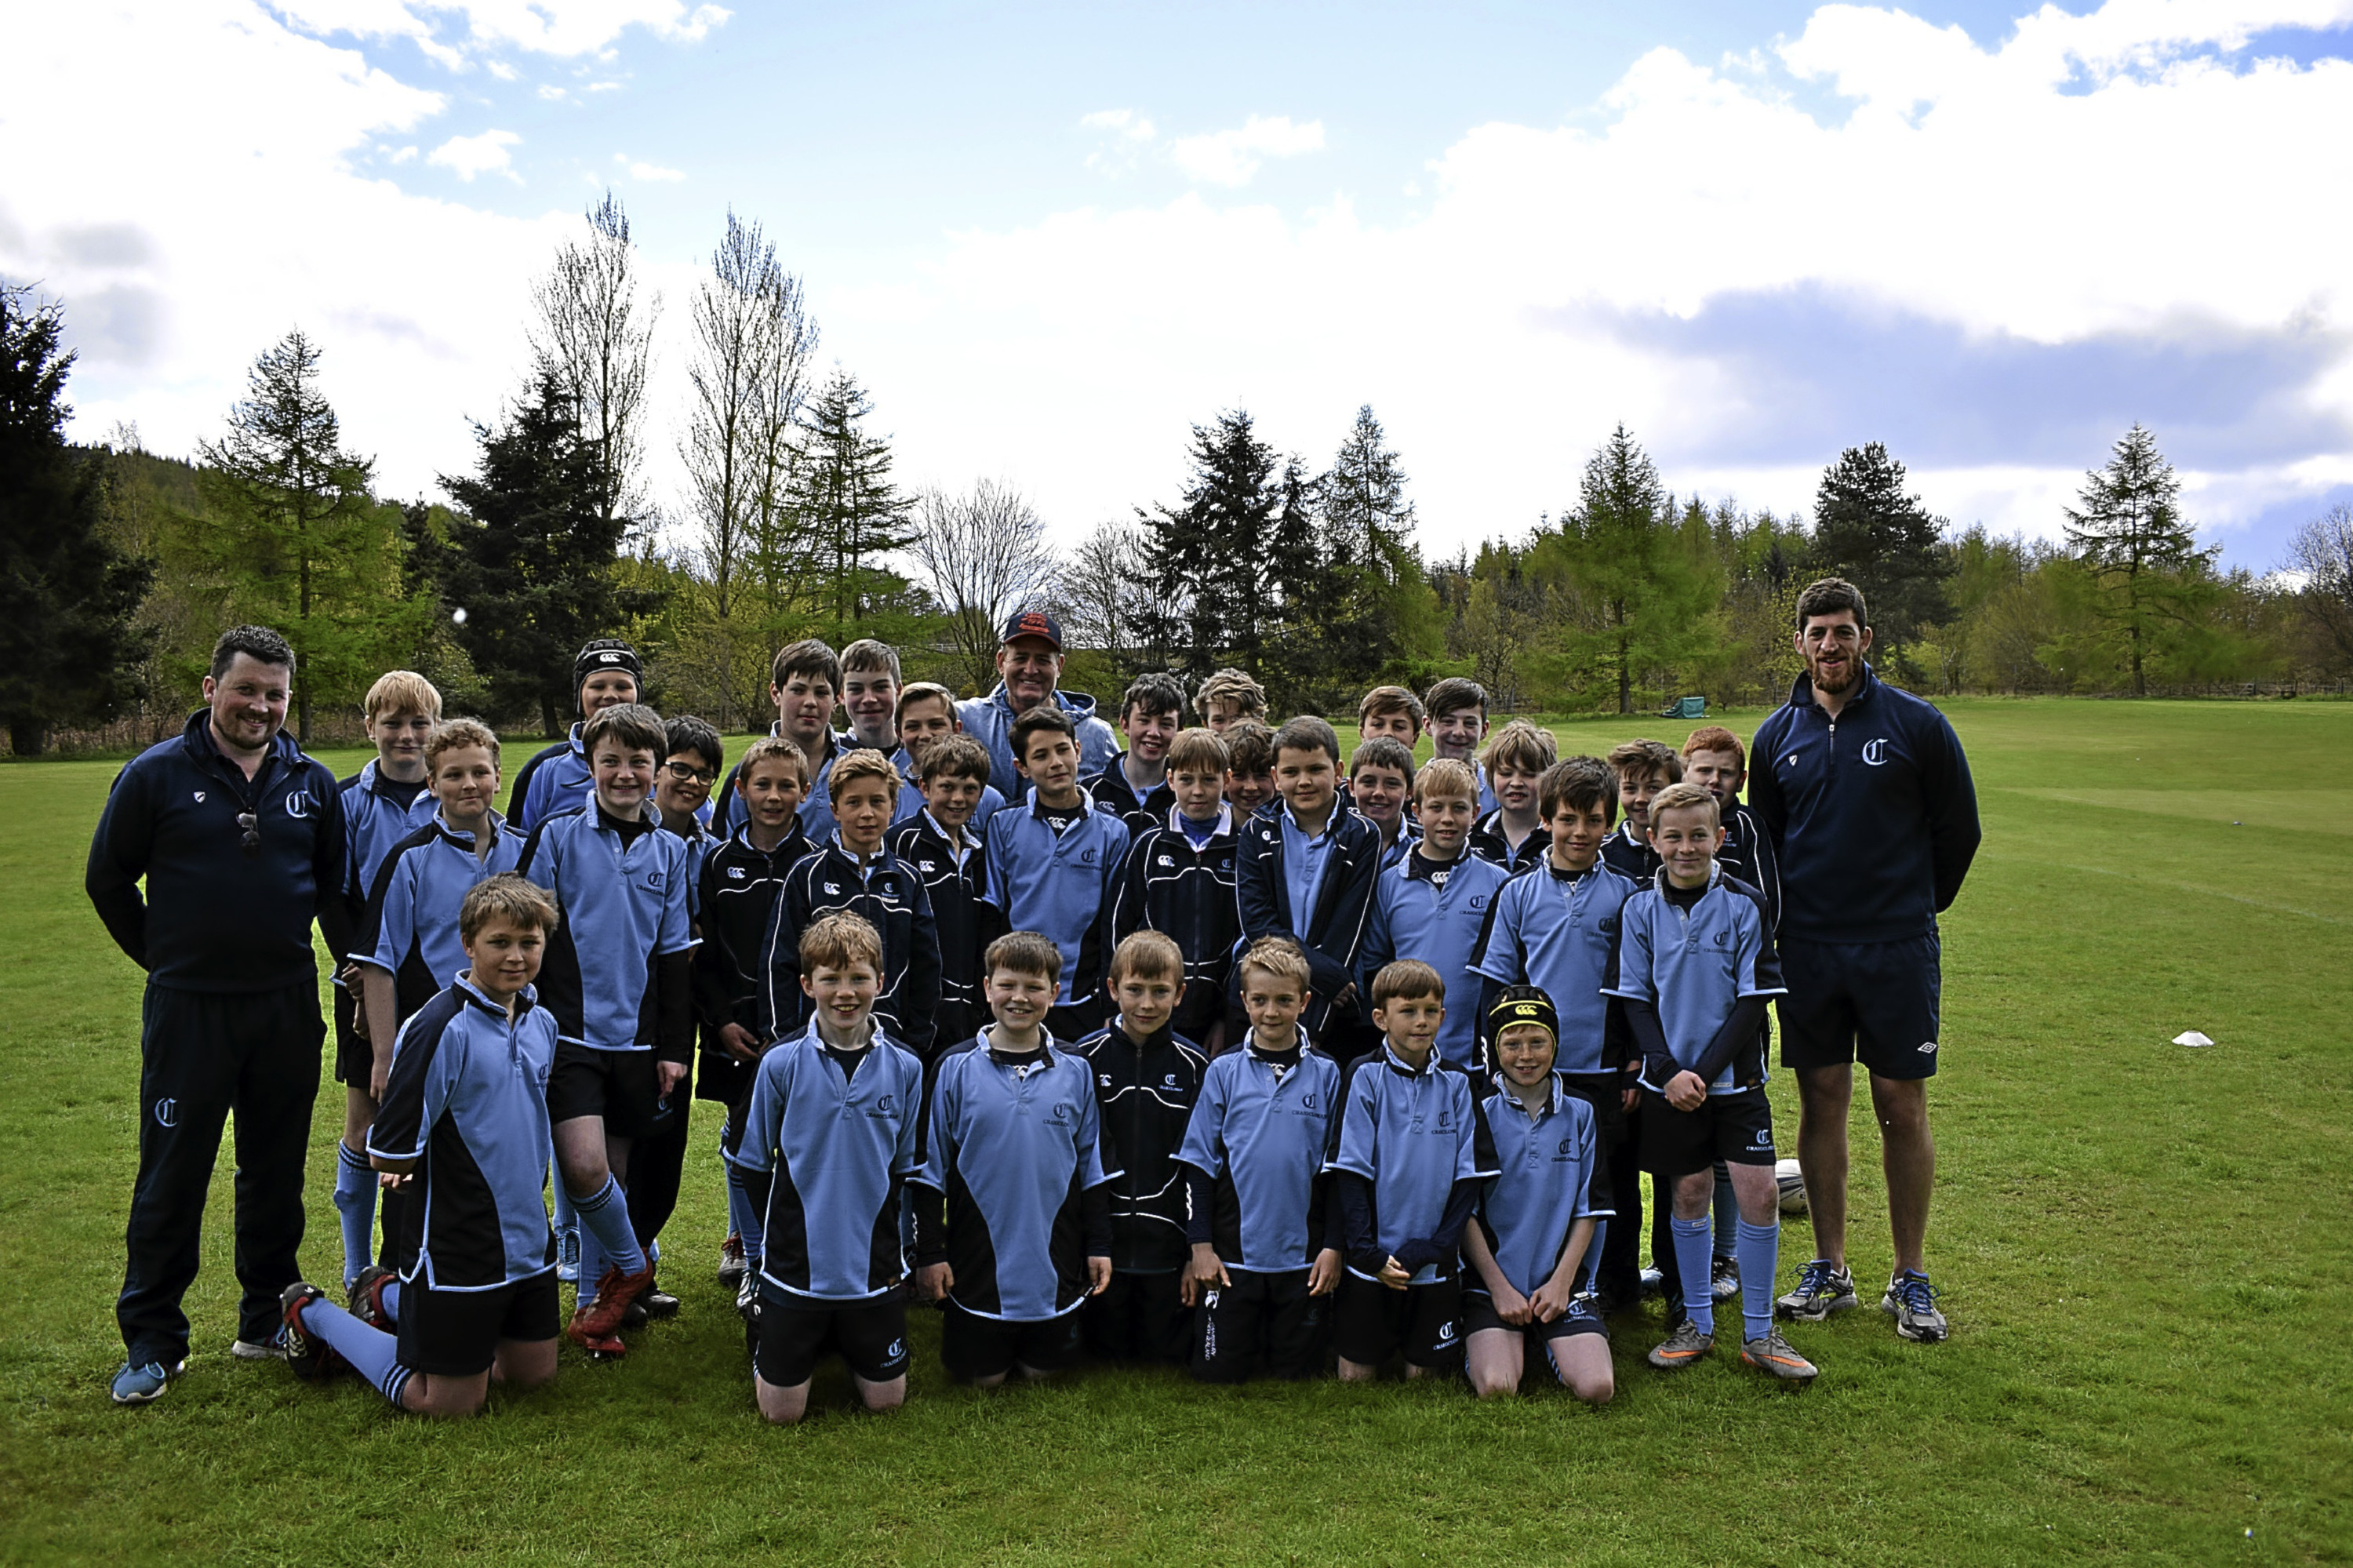 Australian rugby legend David Campese visited Craigclowan.